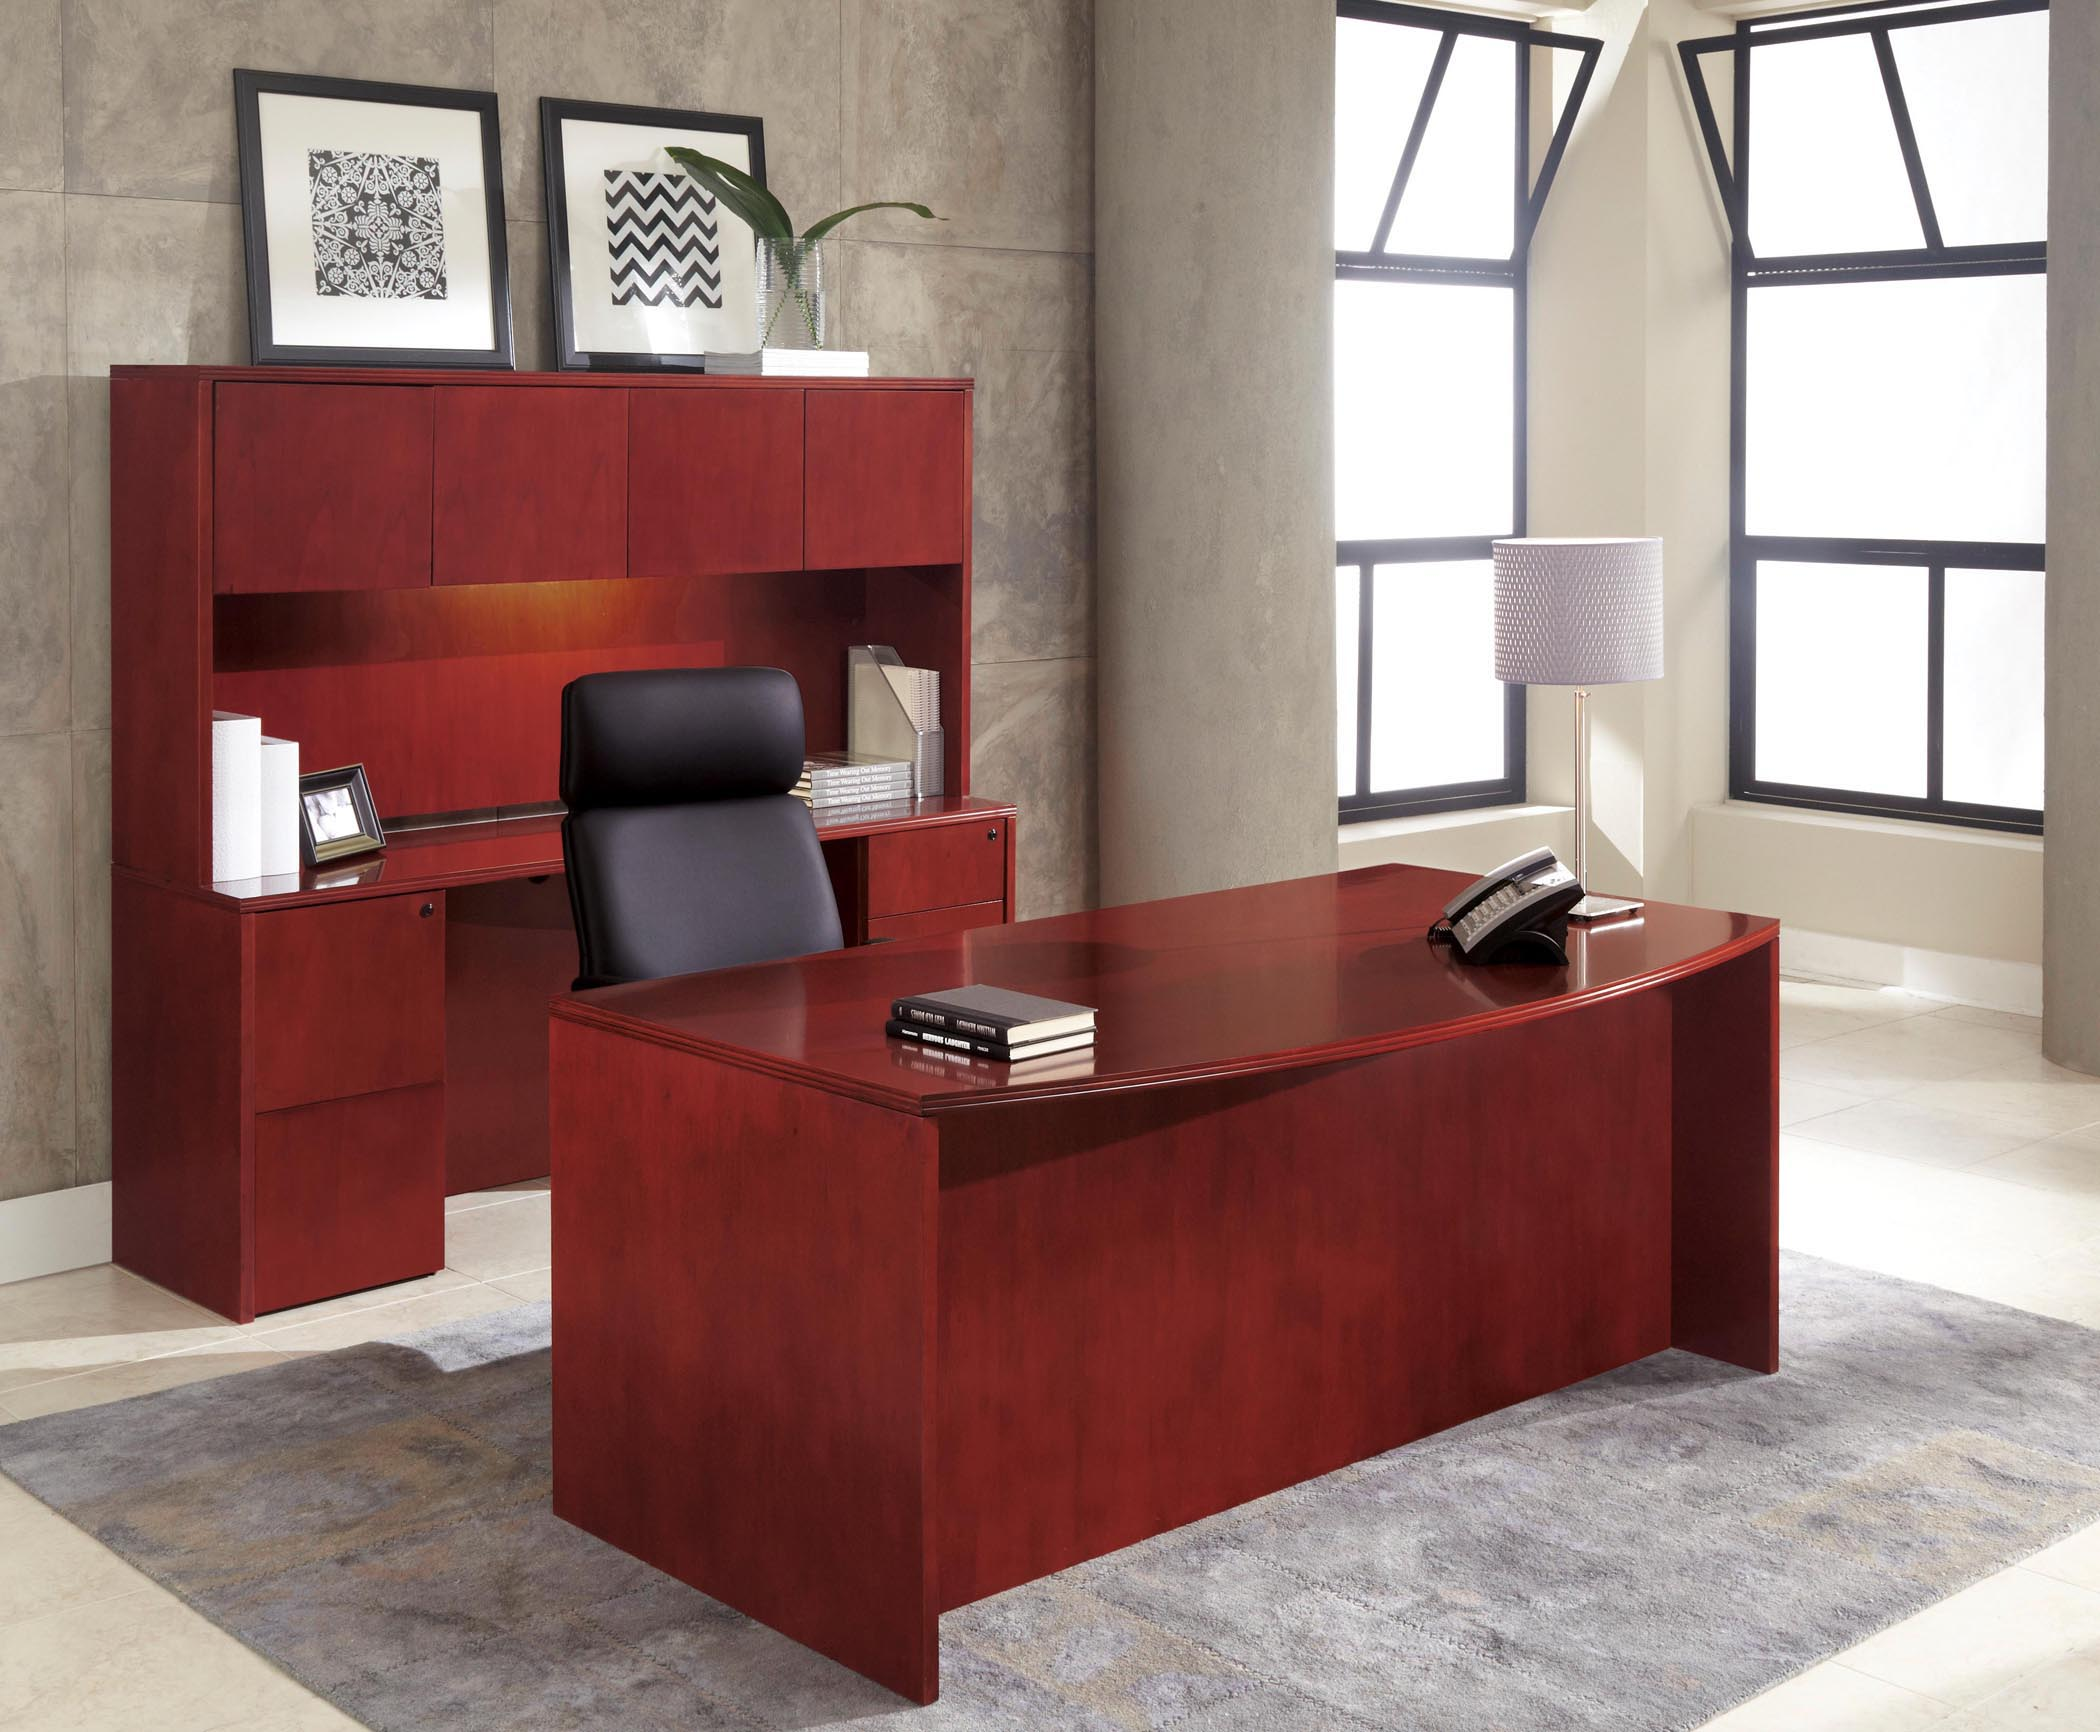 Red Cherry Wood Furniture Best Decor Things